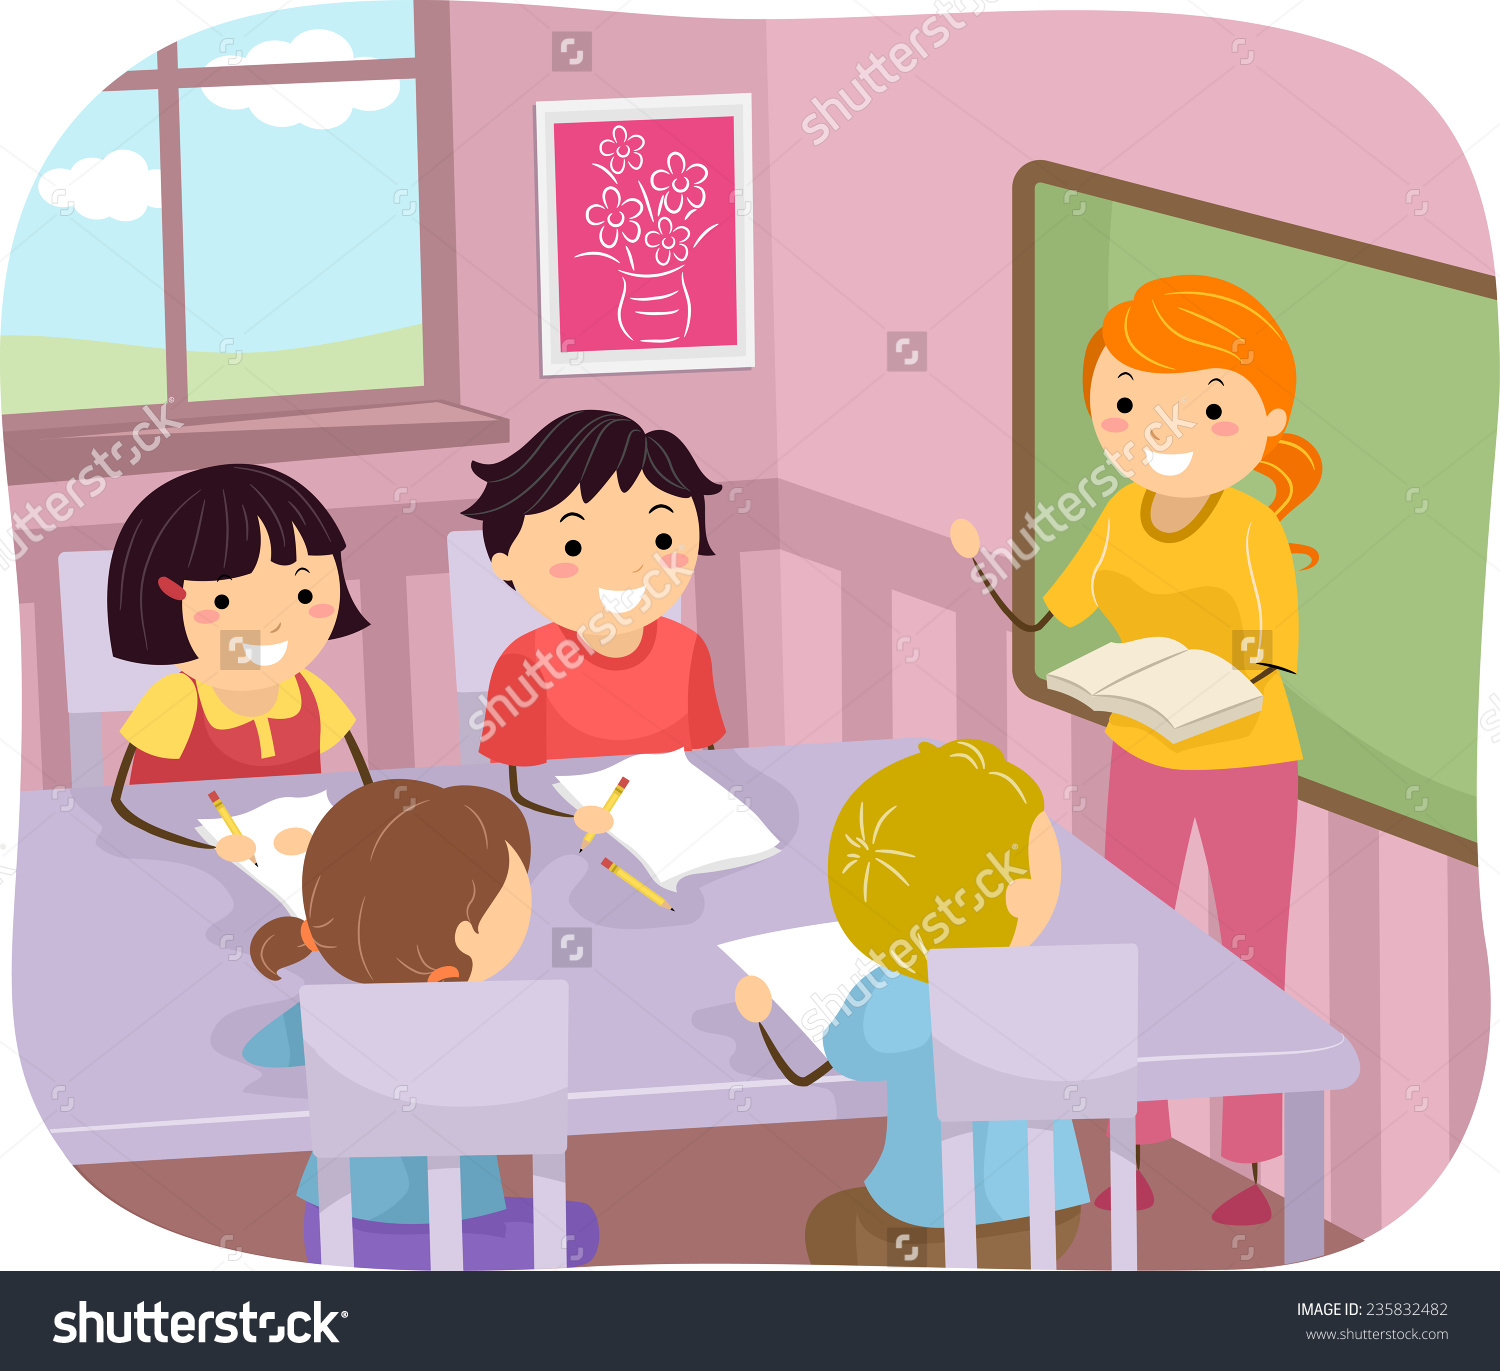 Boy turning in assignment to teacher clipart image black and white stock Boy turning in assignment to teacher clipart black and white ... image black and white stock